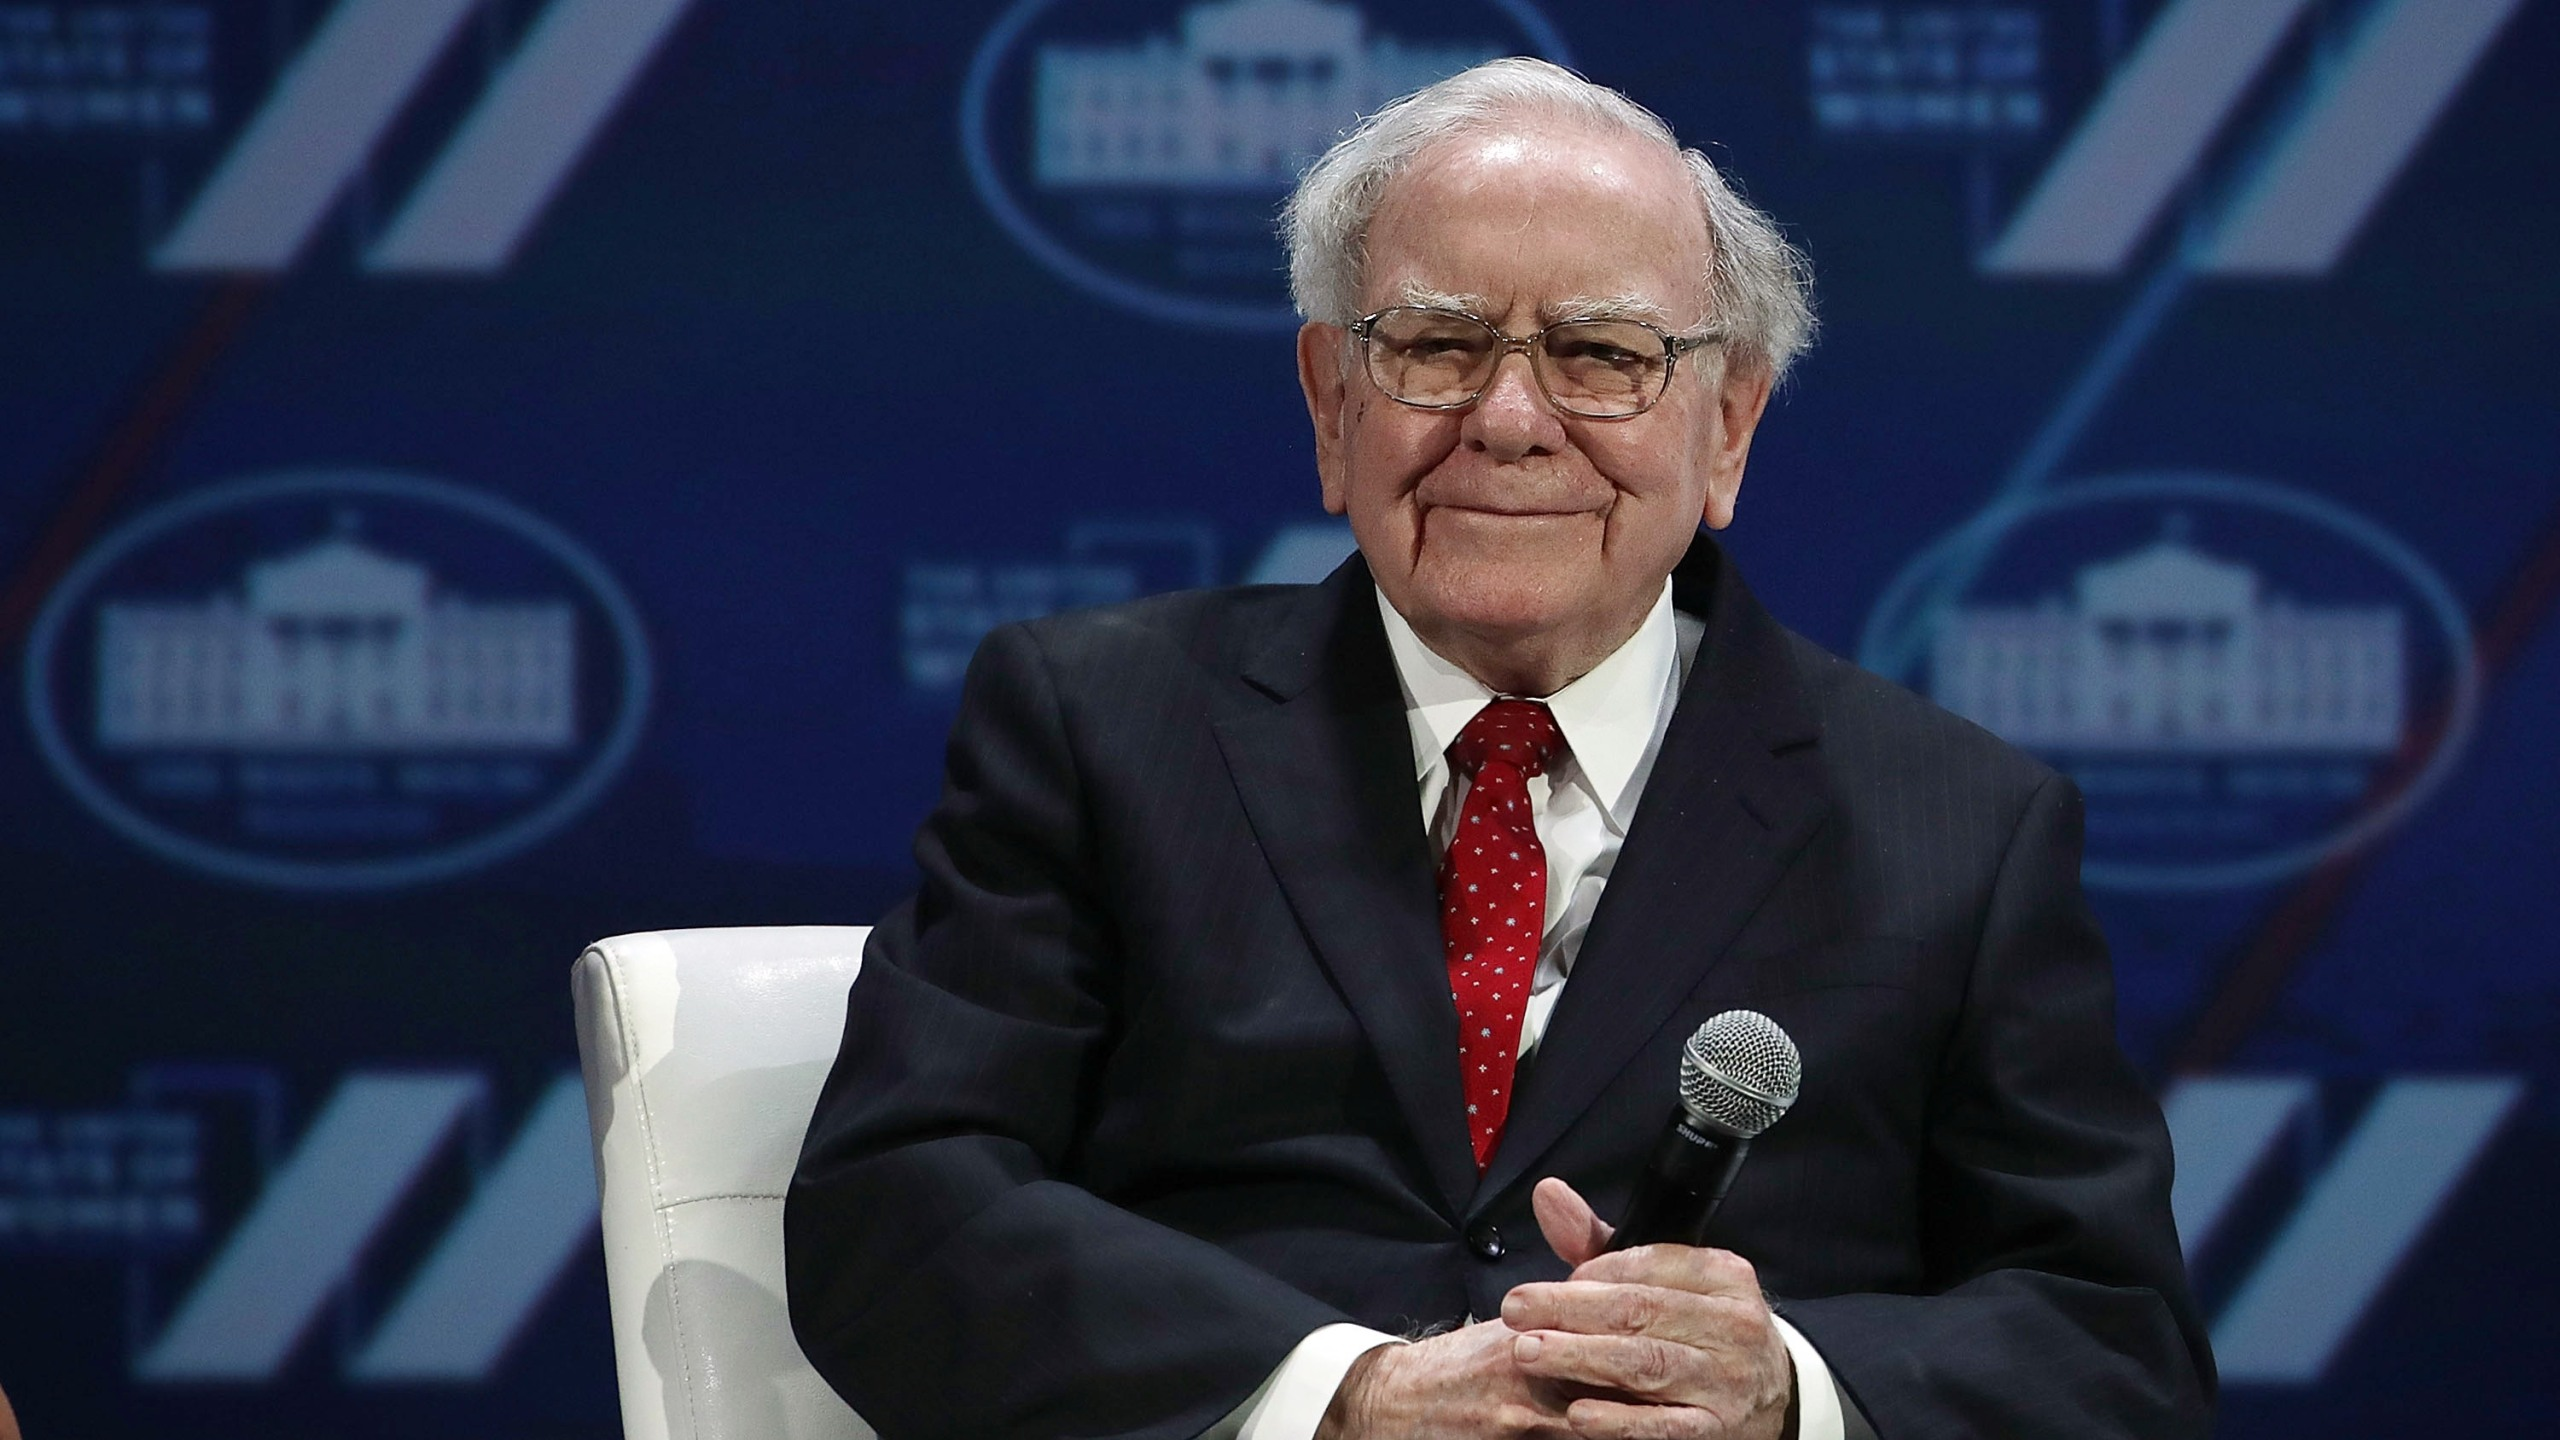 Warren Buffet participates in a discussion during the White House Summit on the United State Of Women June 14, 2016 in Washington, D.C. (Credit: Alex Wong/Getty Images)